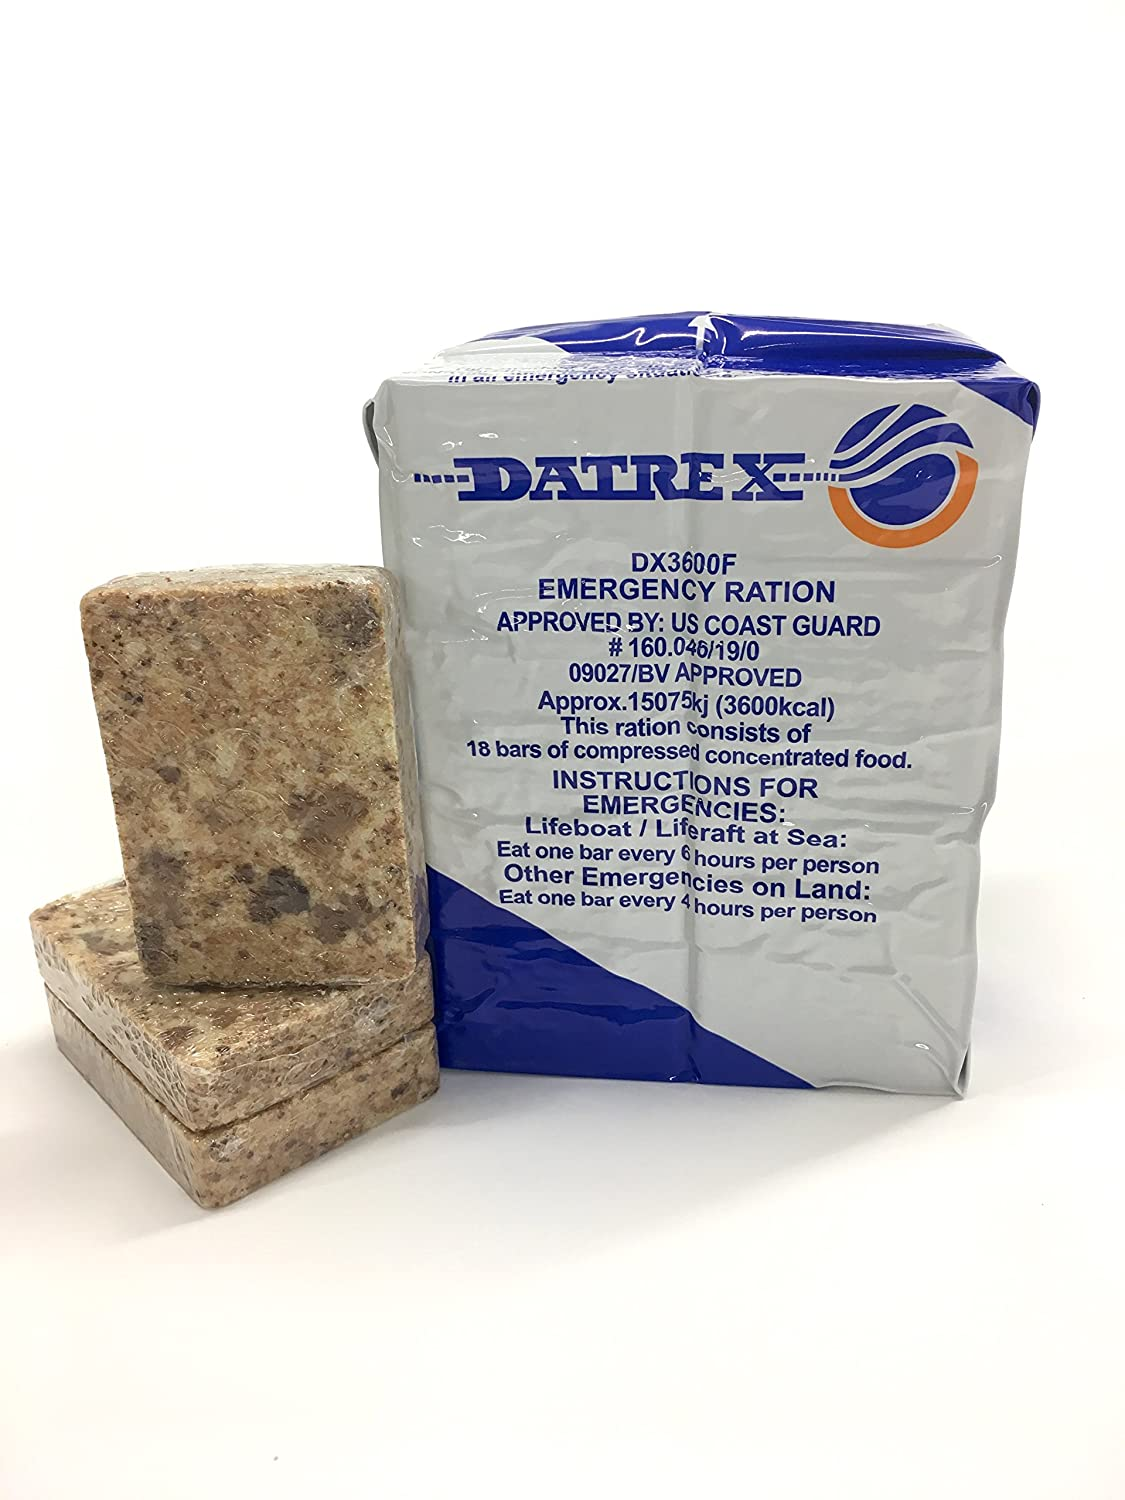 Datrex Emergency Survival 3600 Calorie Food Ration Bar, 18 Bars DX3600F-1